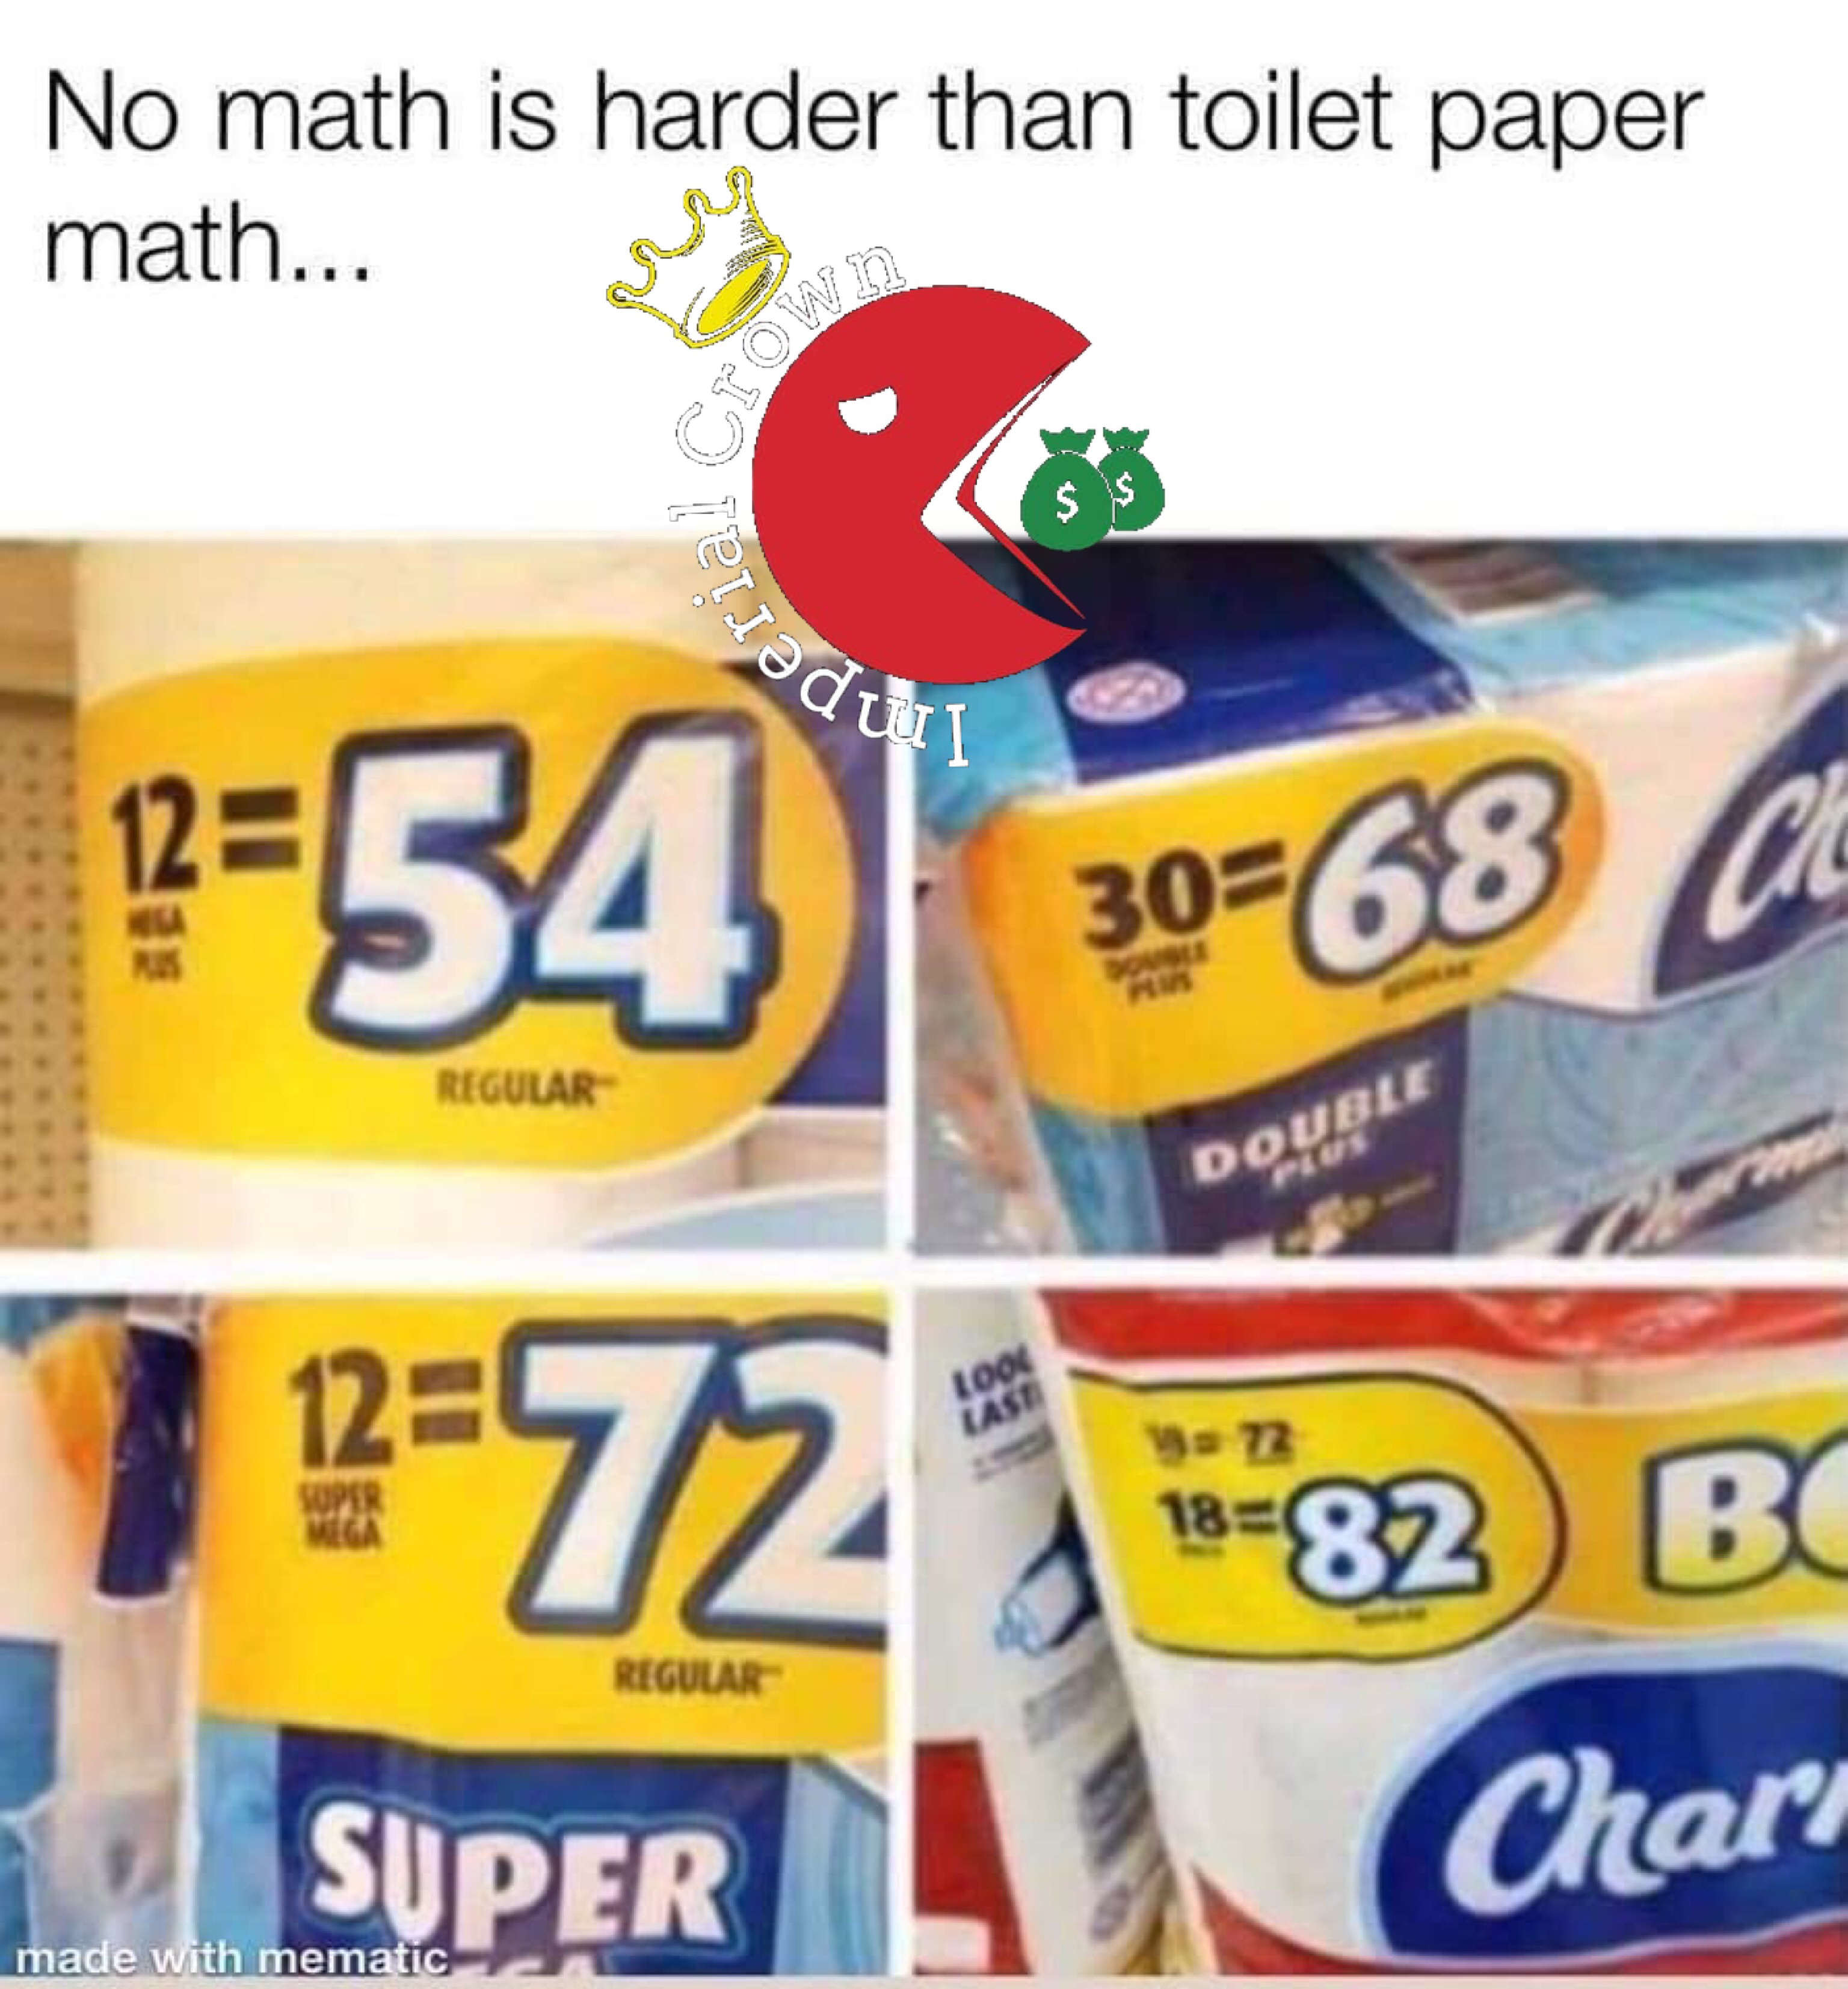 No math is harder than toilet paper math